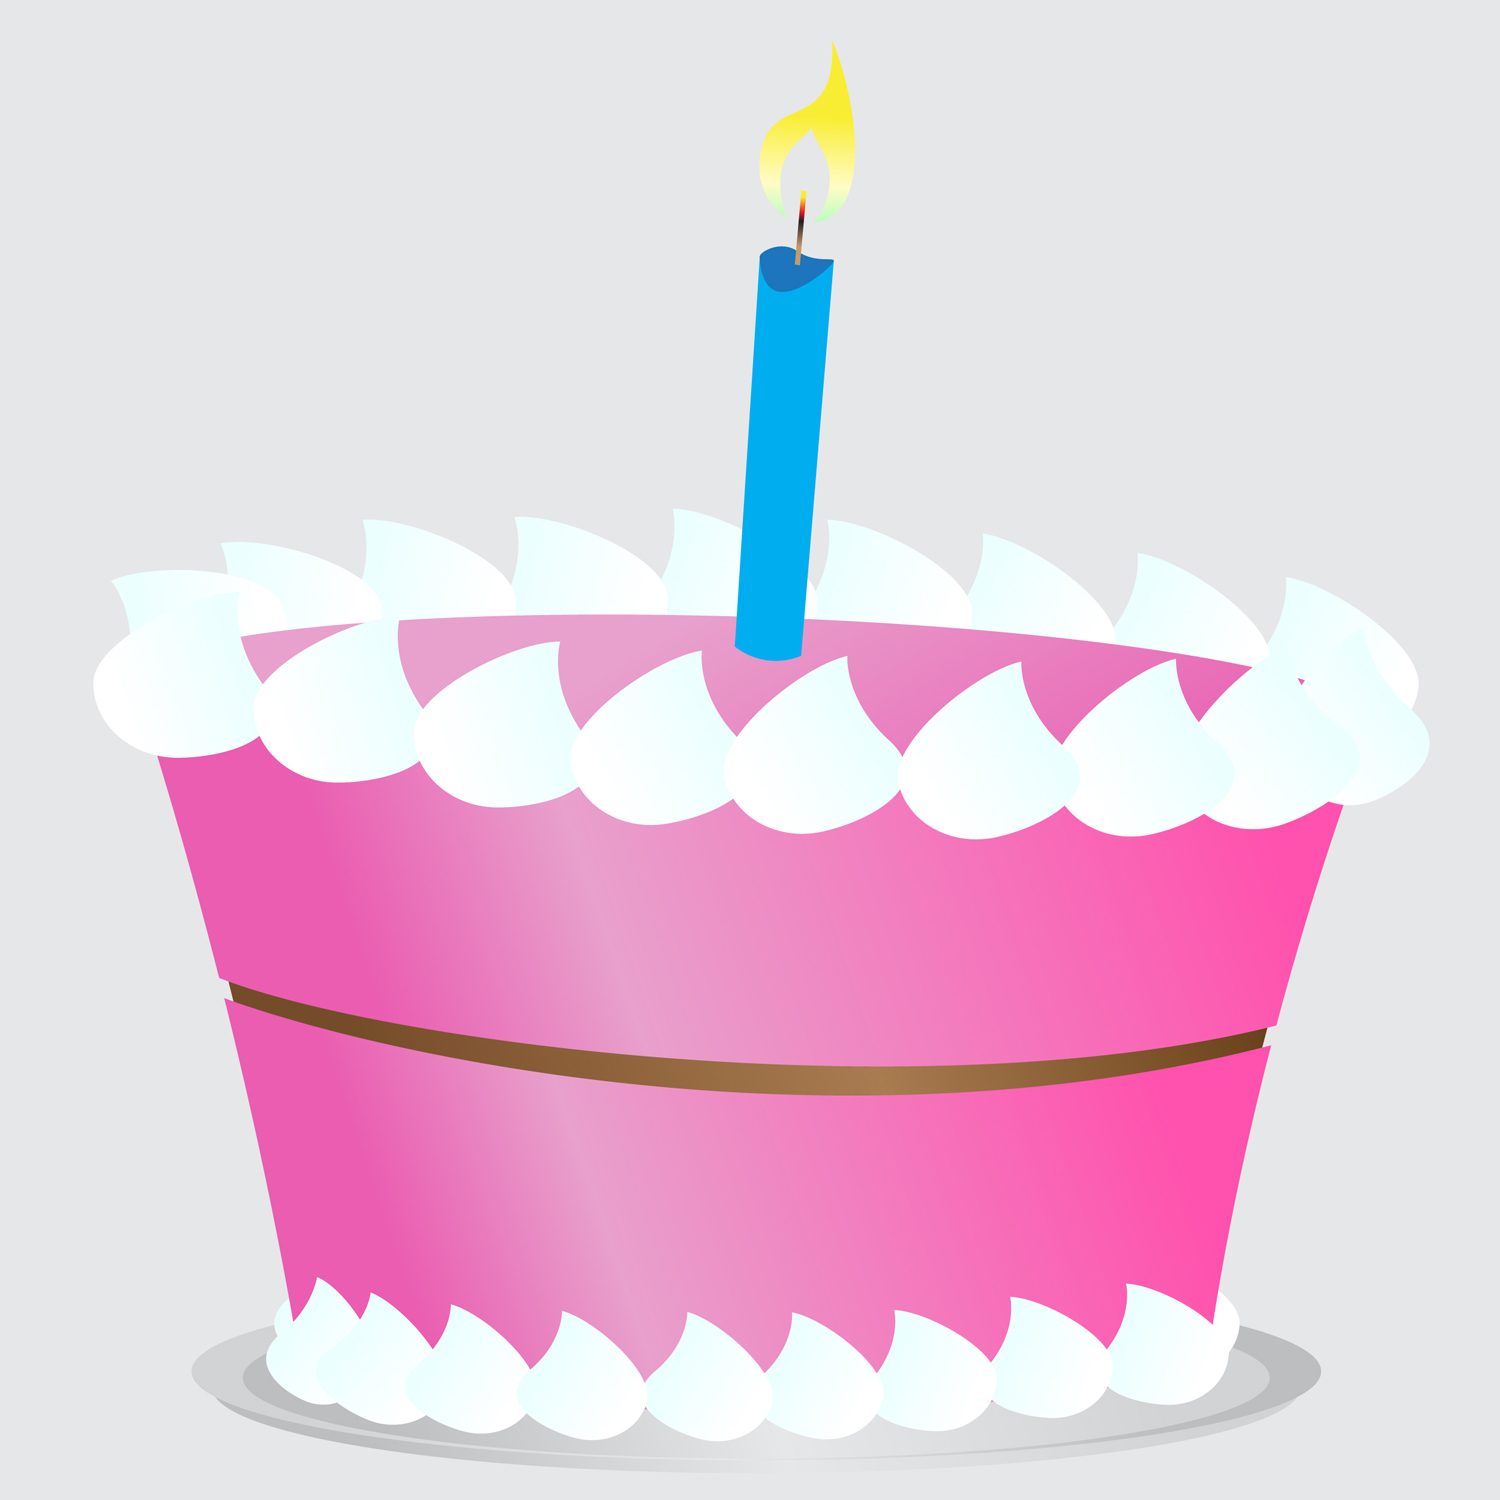 Birthday Cake Clipart Simple Vector Illustration Of A Pink Frosted